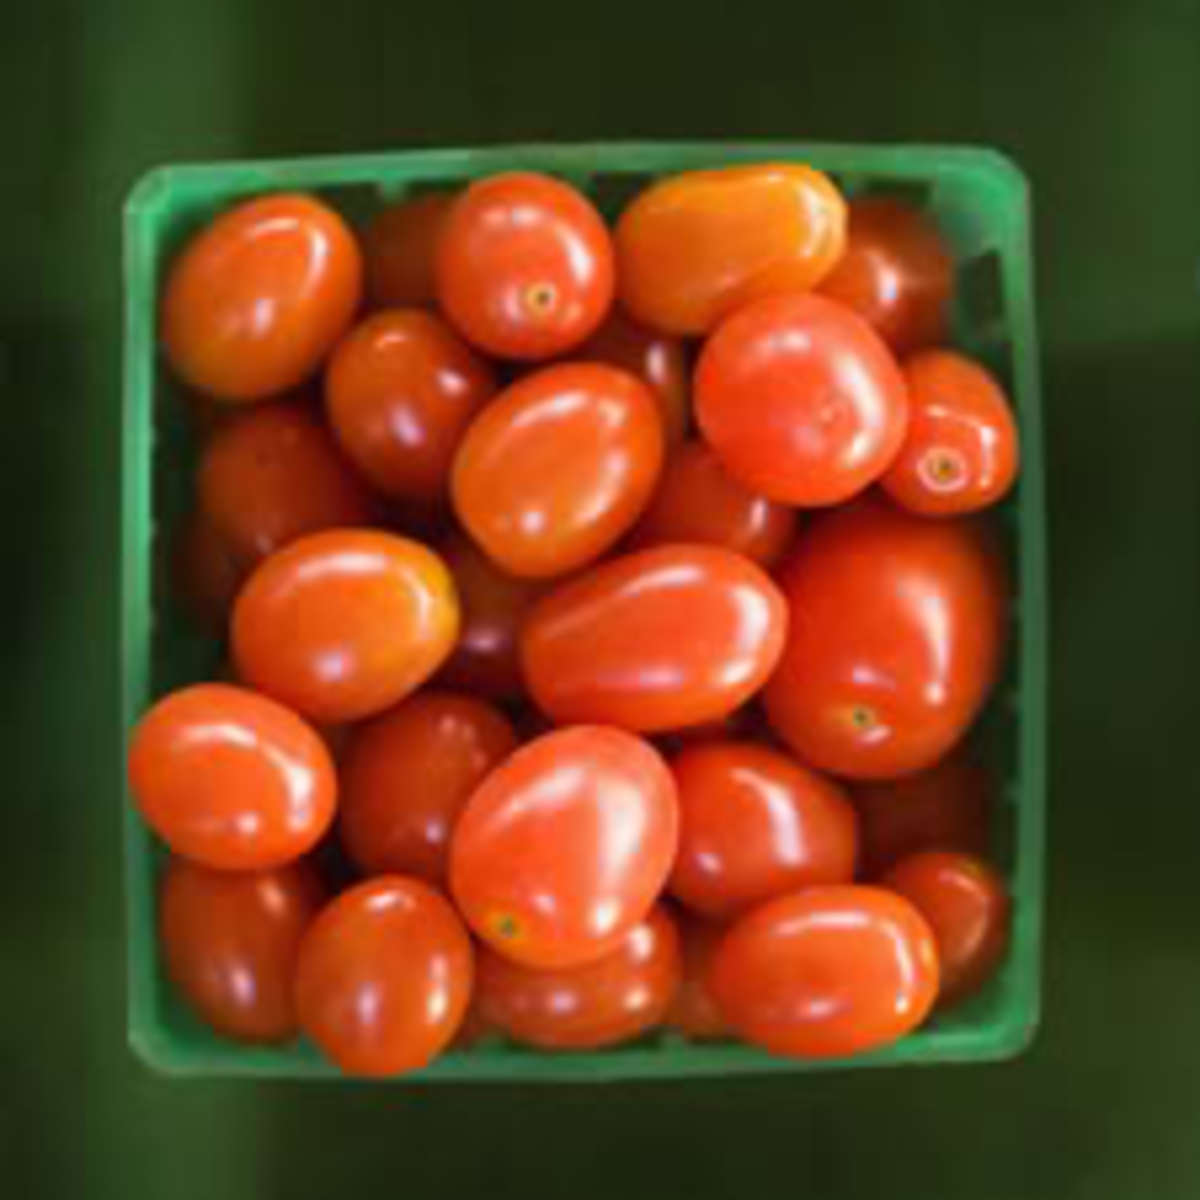 Container of red cherry tomatoes.